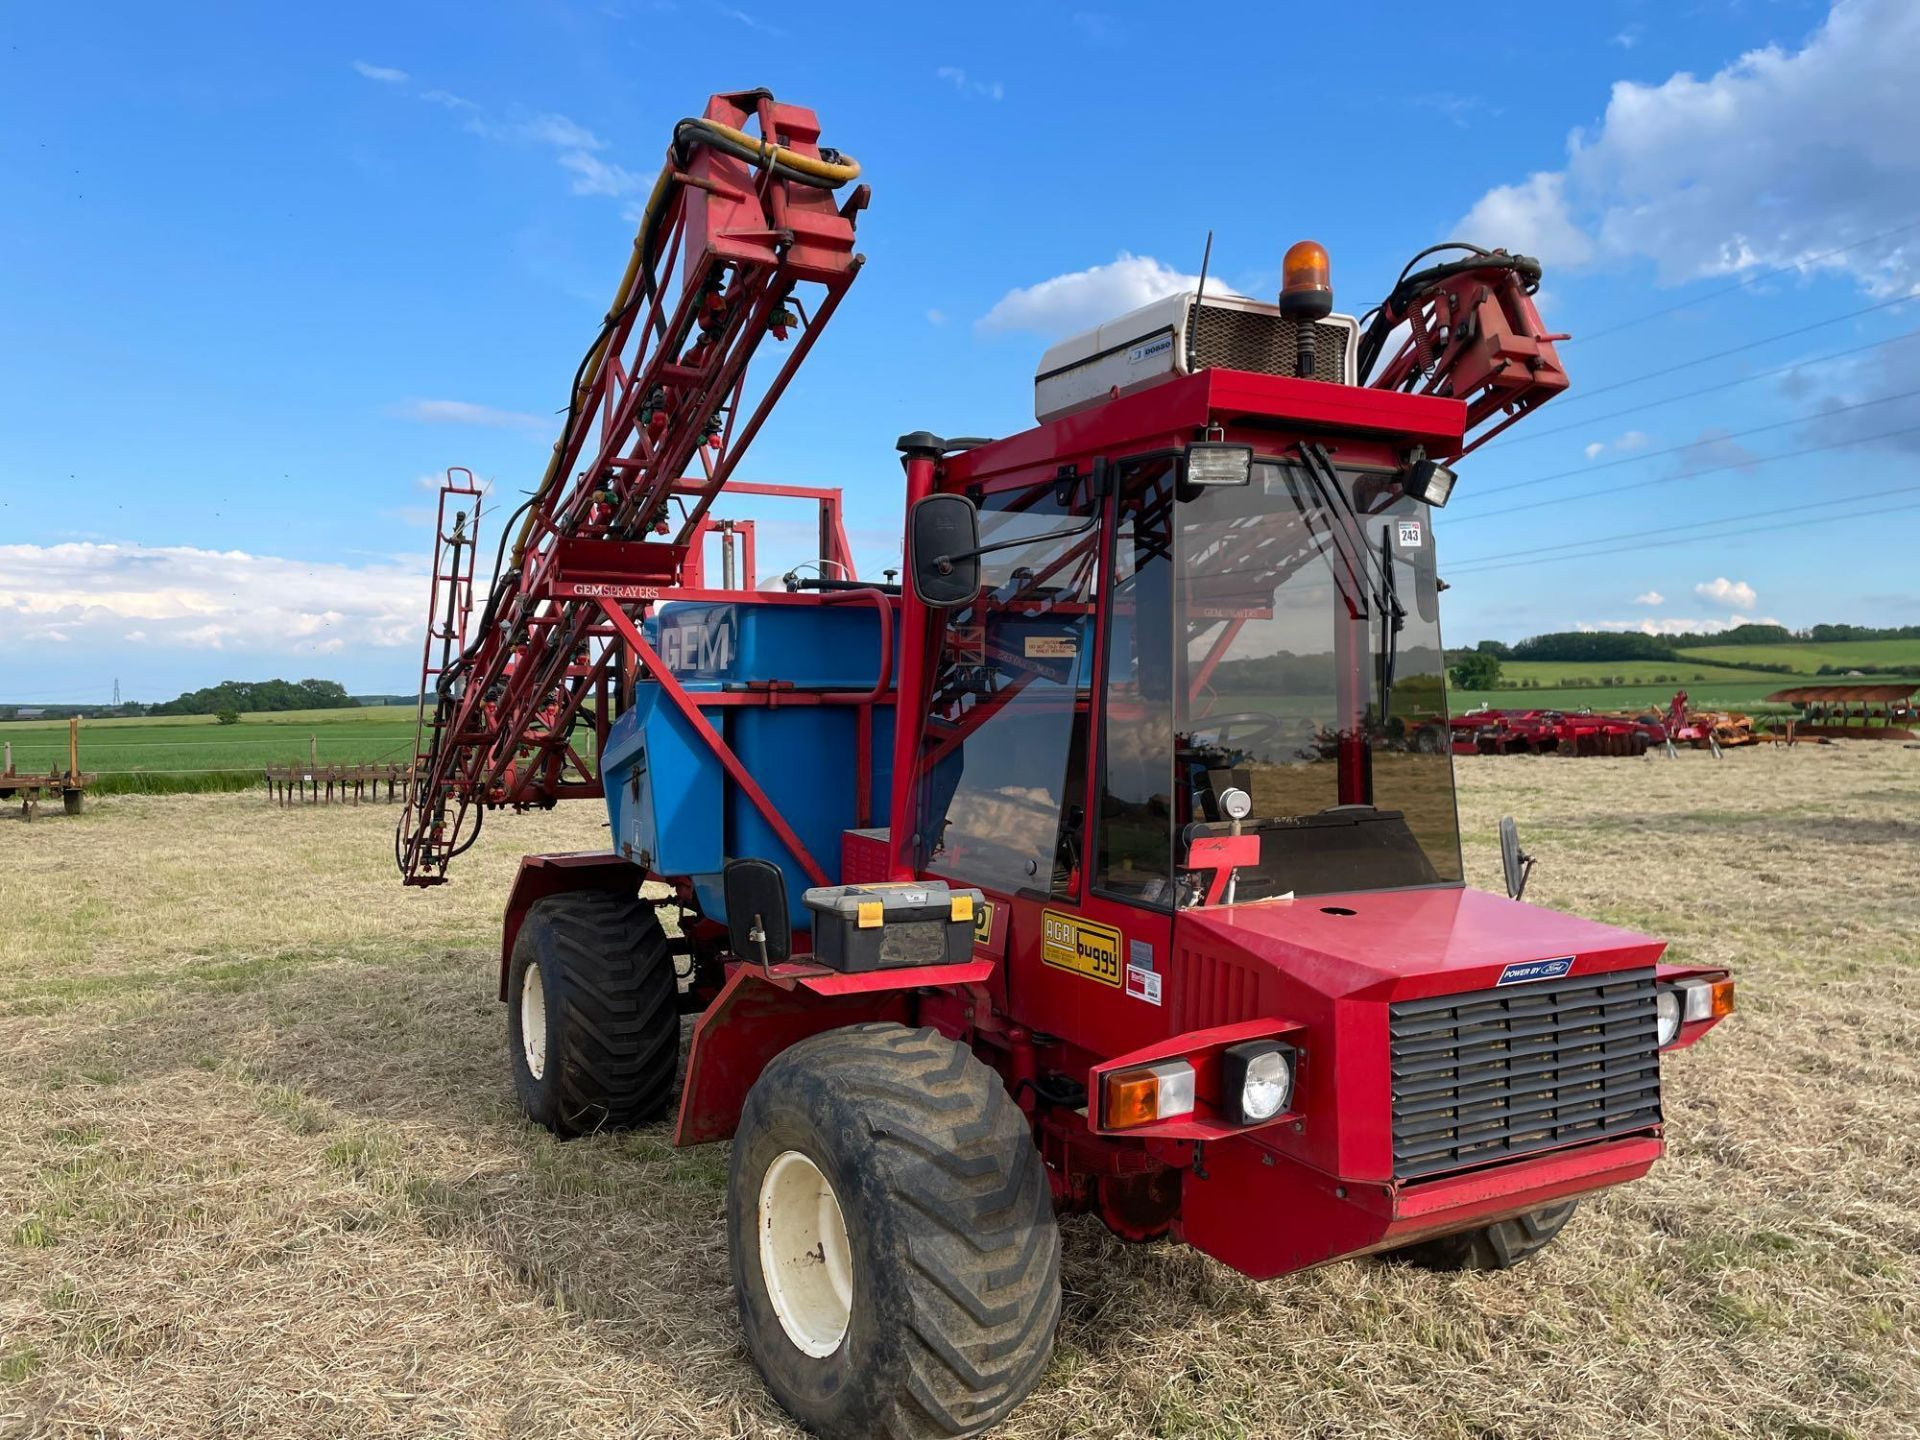 1995 Frazier Agri-Buggy SD with GEM 24m self propelled sprayer, 1500l tank on 38x20.00-16 wheels and - Image 25 of 27